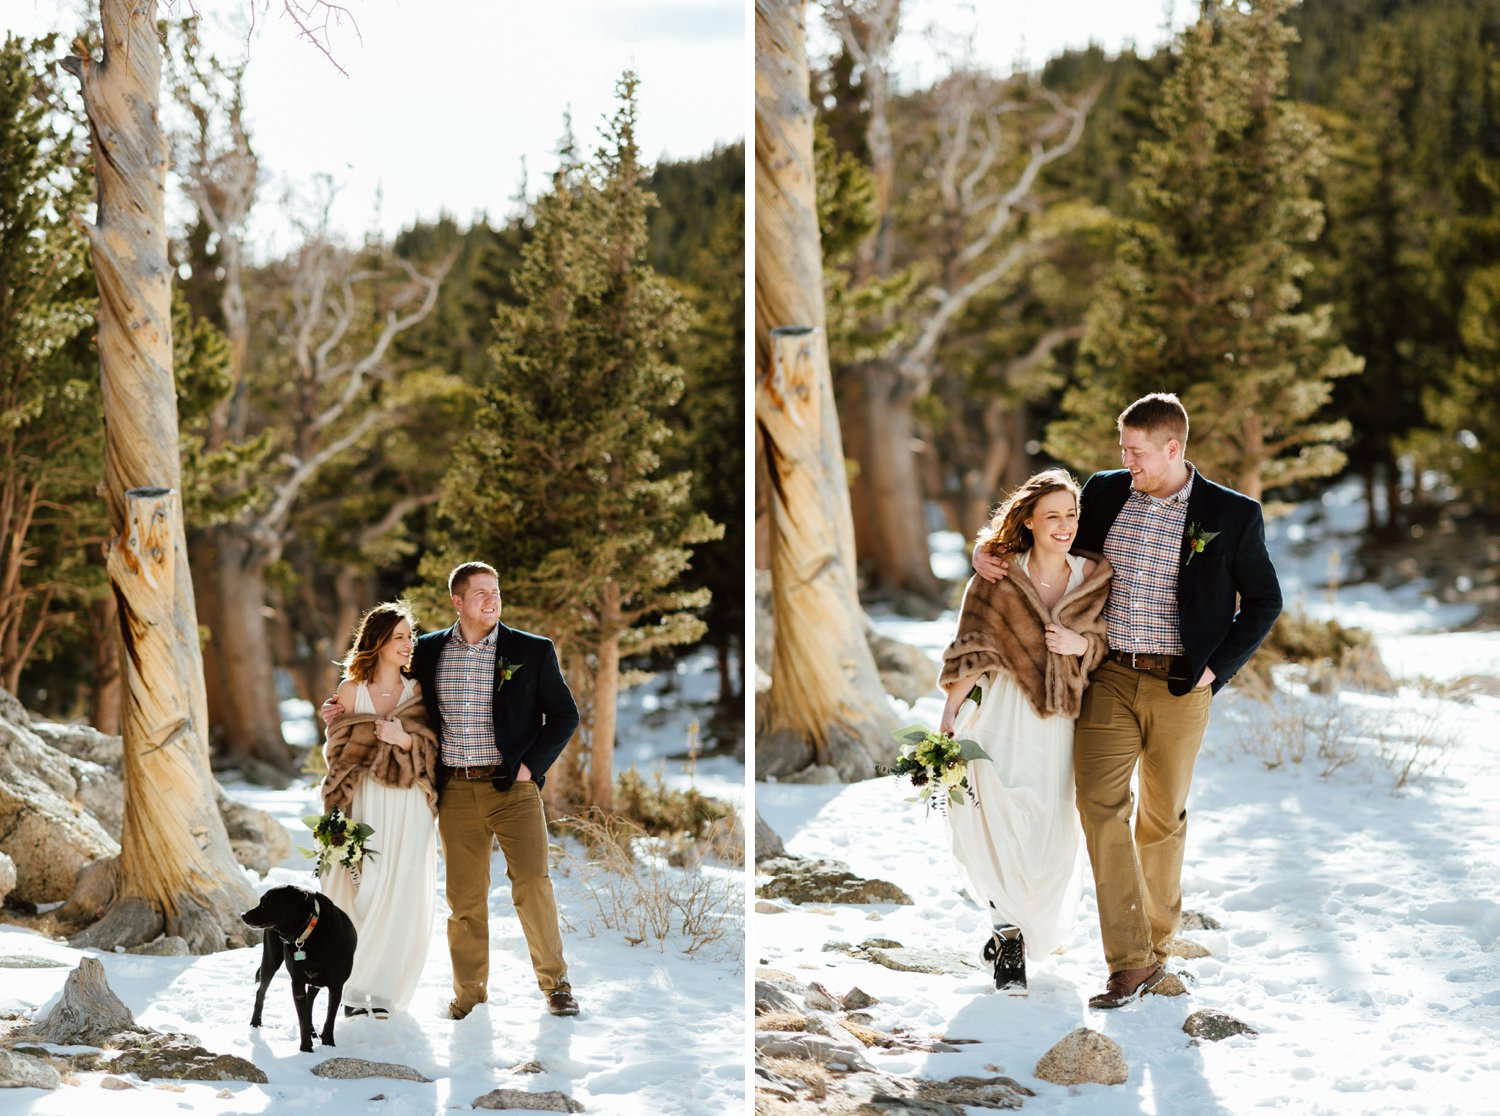 This bride and groom look adorable hiking through the woods on their wedding day! I love that they even brought their dog along on their elopement at St. Mary's Glacier in Colorado's mountains!| Intimate wedding photos by mountain wedding photographer,Maddie Mae.